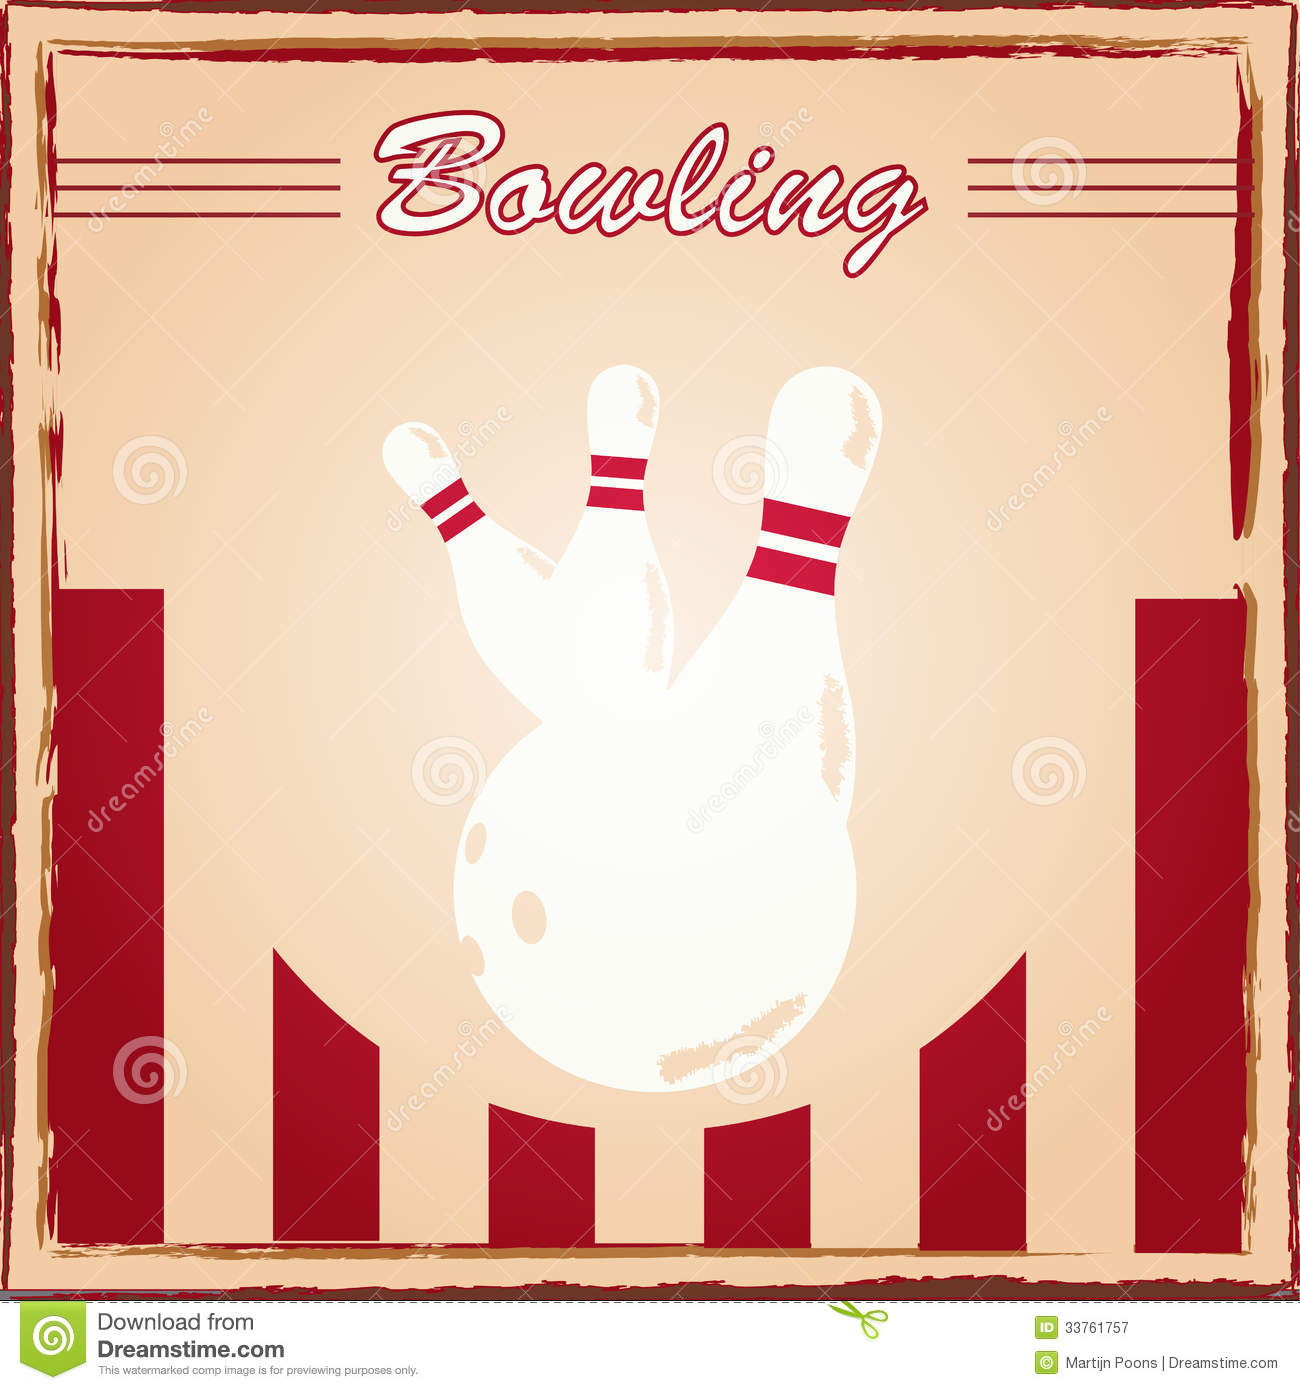 Bowling Poster Royalty Free Stock Photography - Image ...